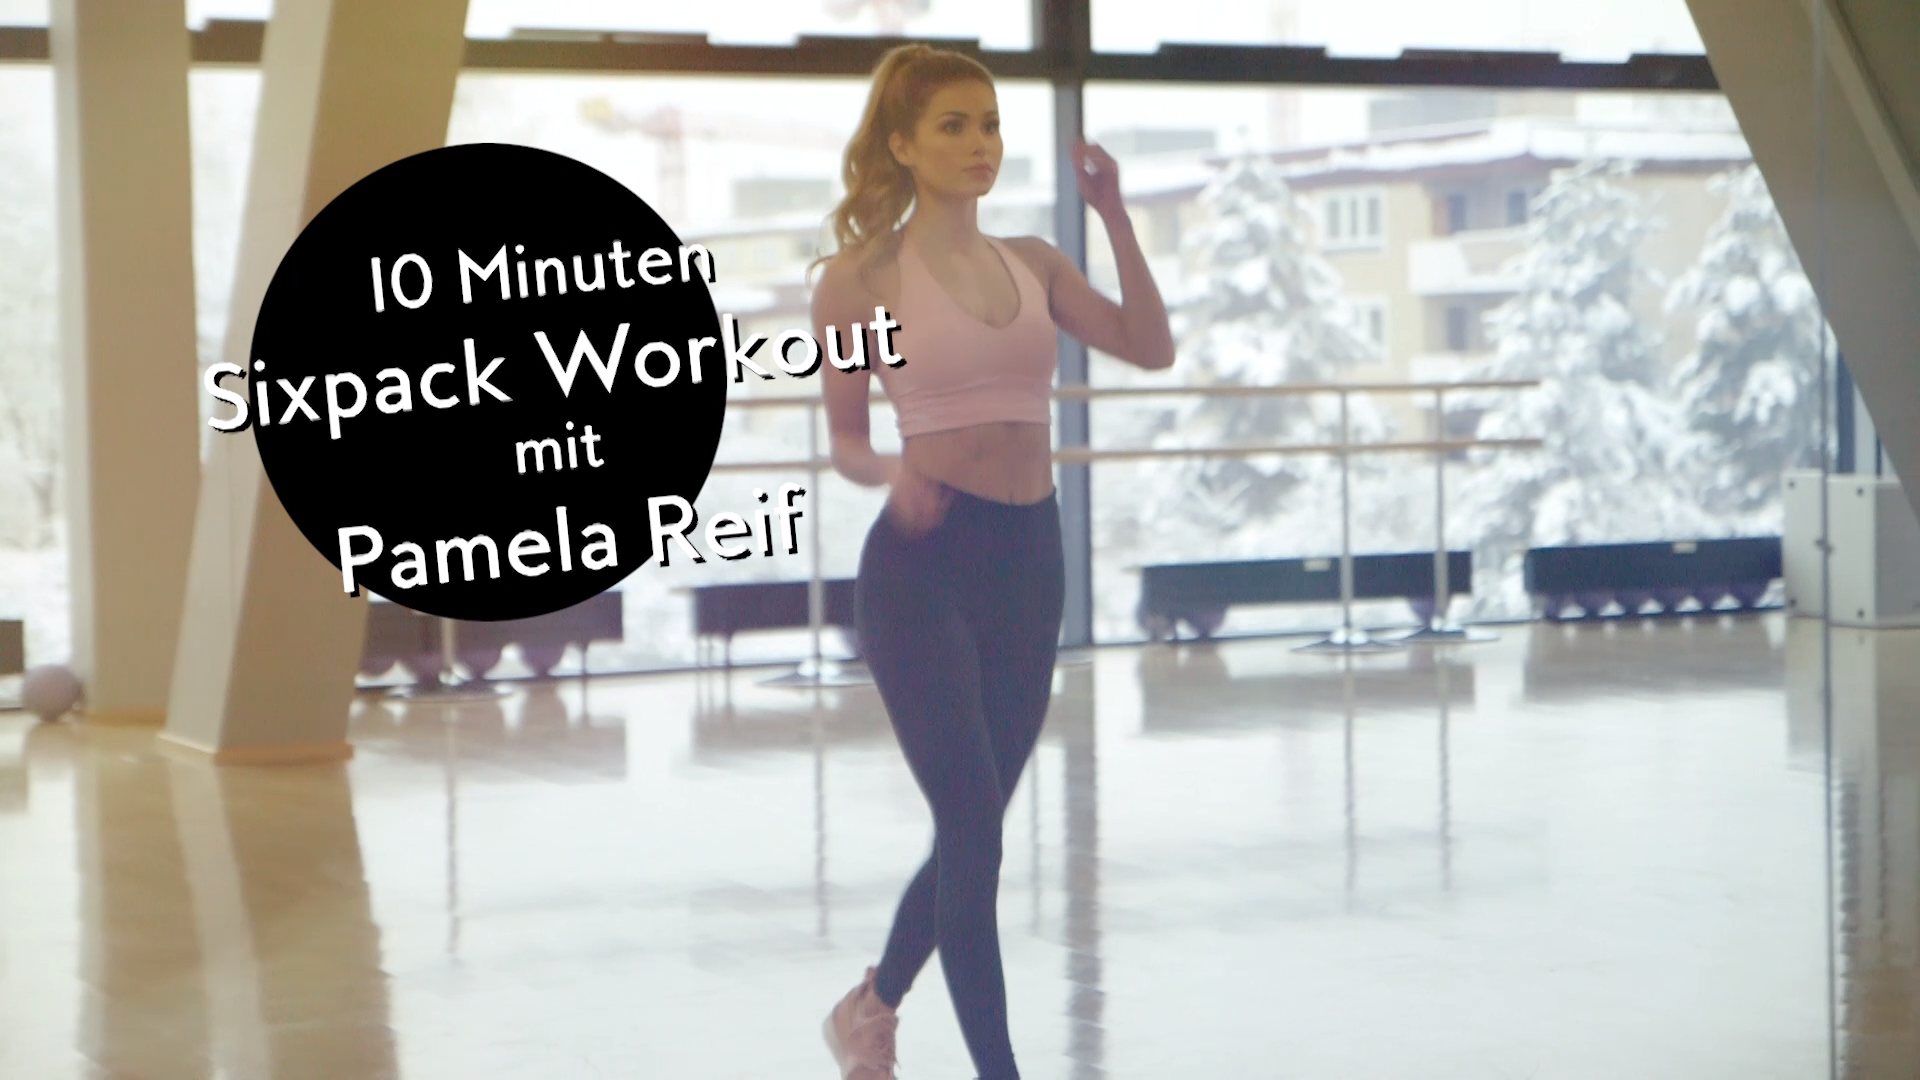 Sixpack Workout mit Pamela Reif #fitnessvideos